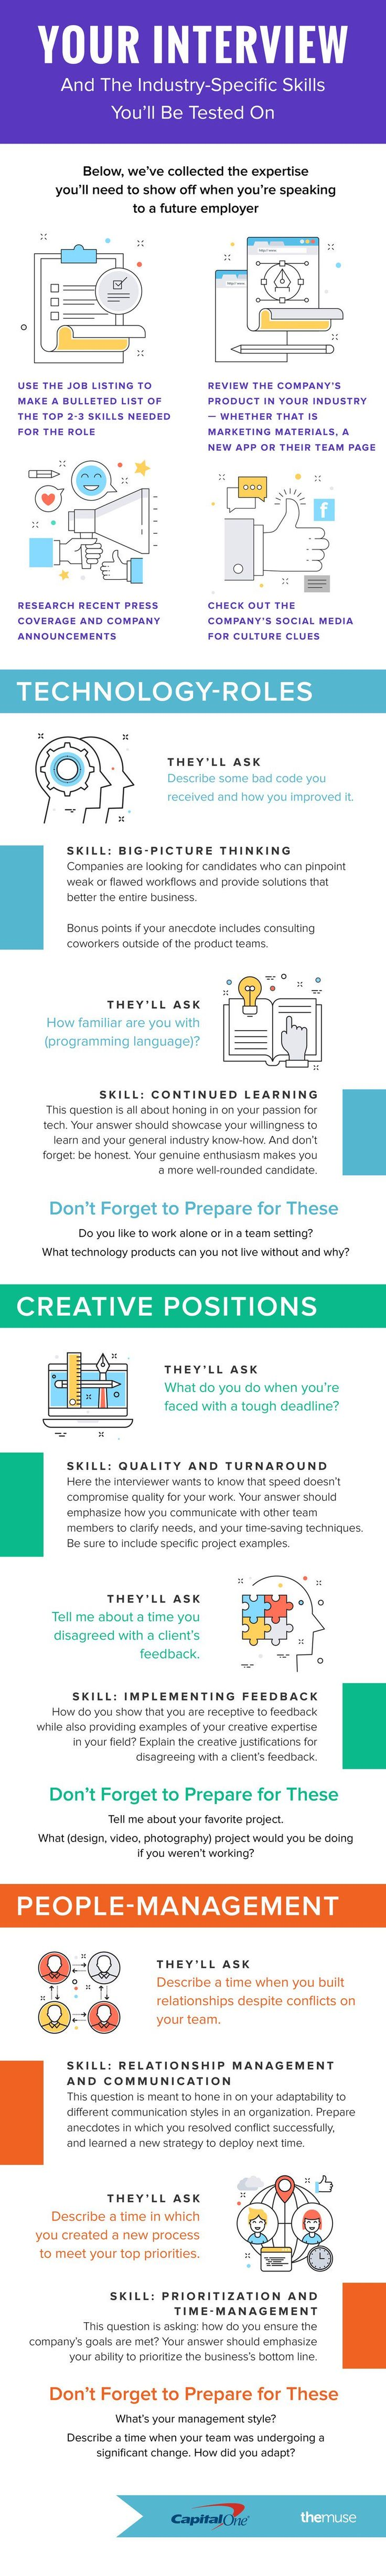 Common Interview Questions By Industry   The Muse